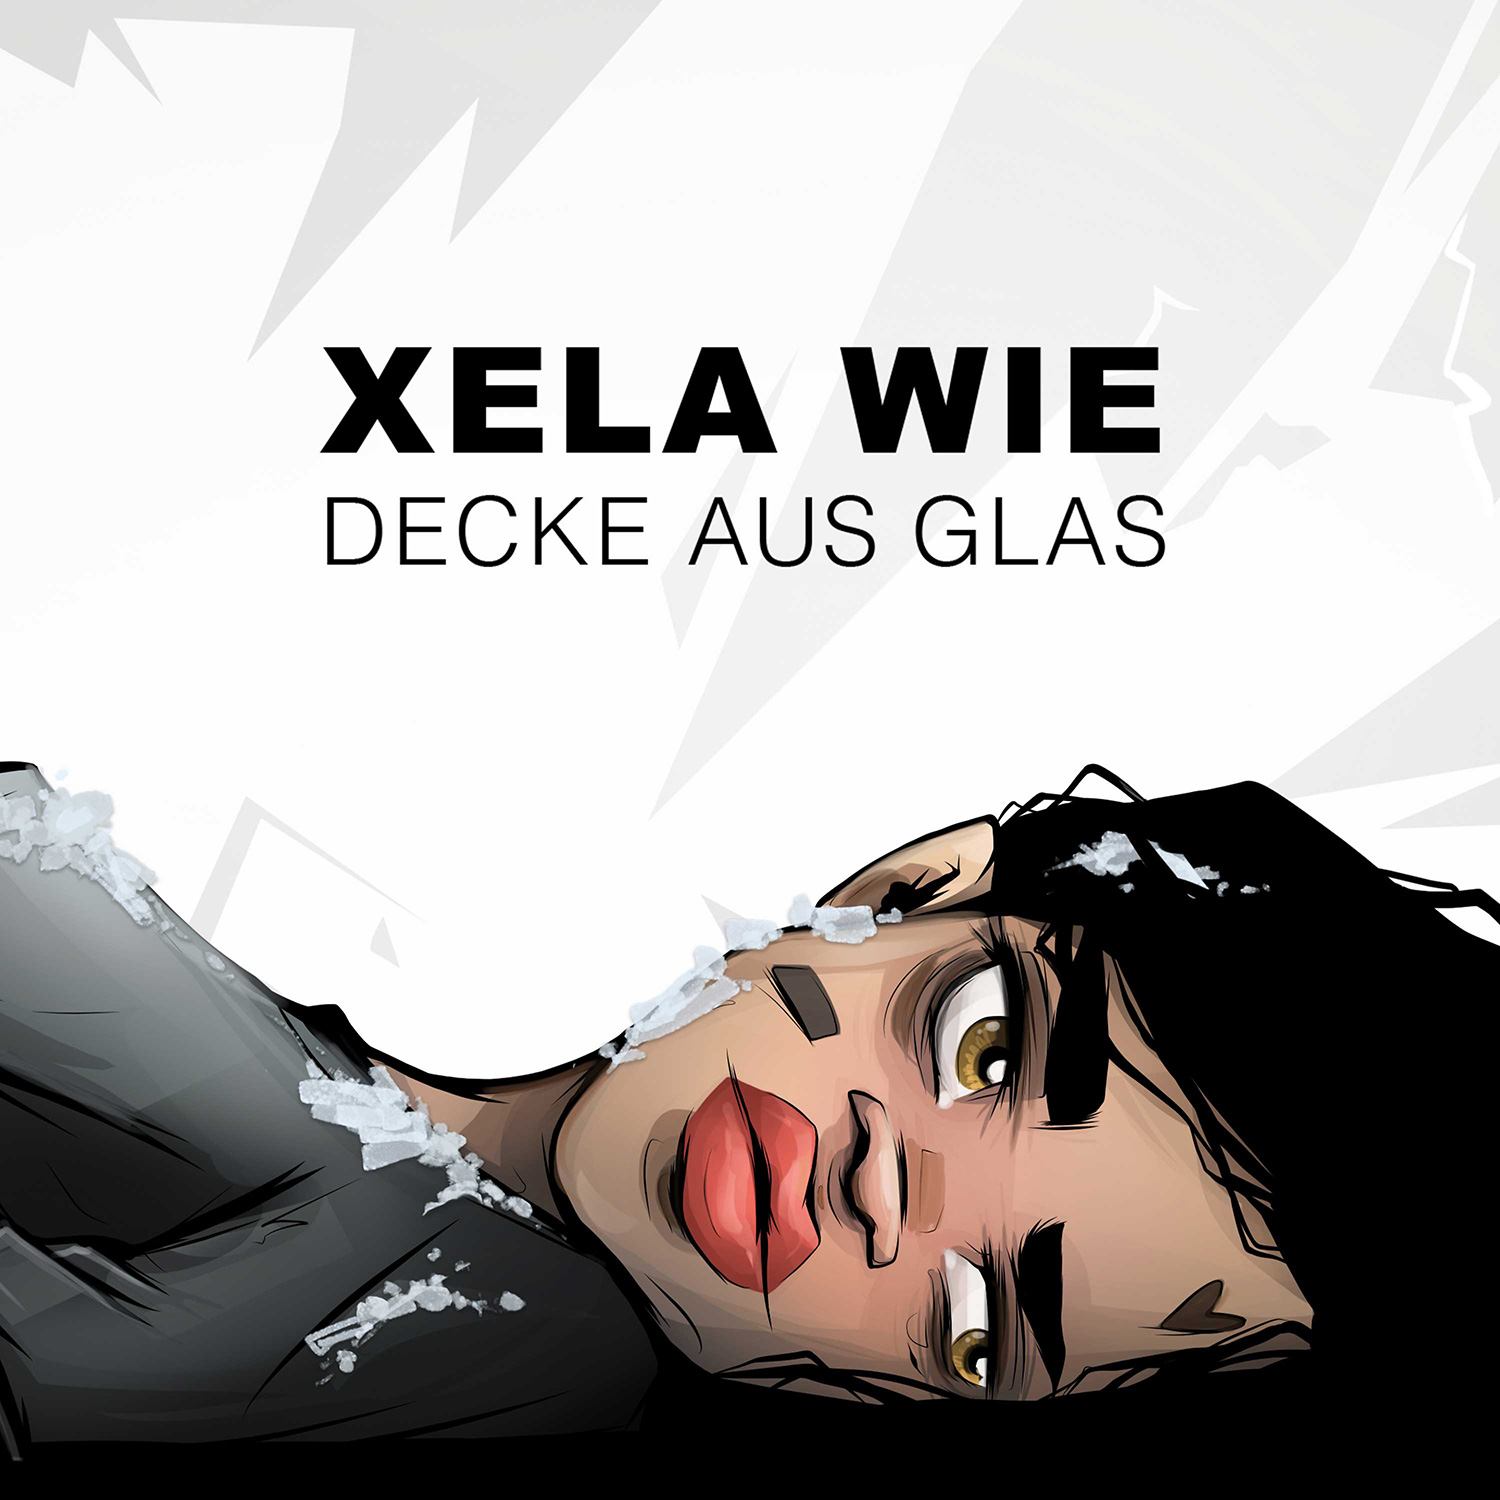 Upcoming: Xela Wie - Xela Wie Mit Neuer Single